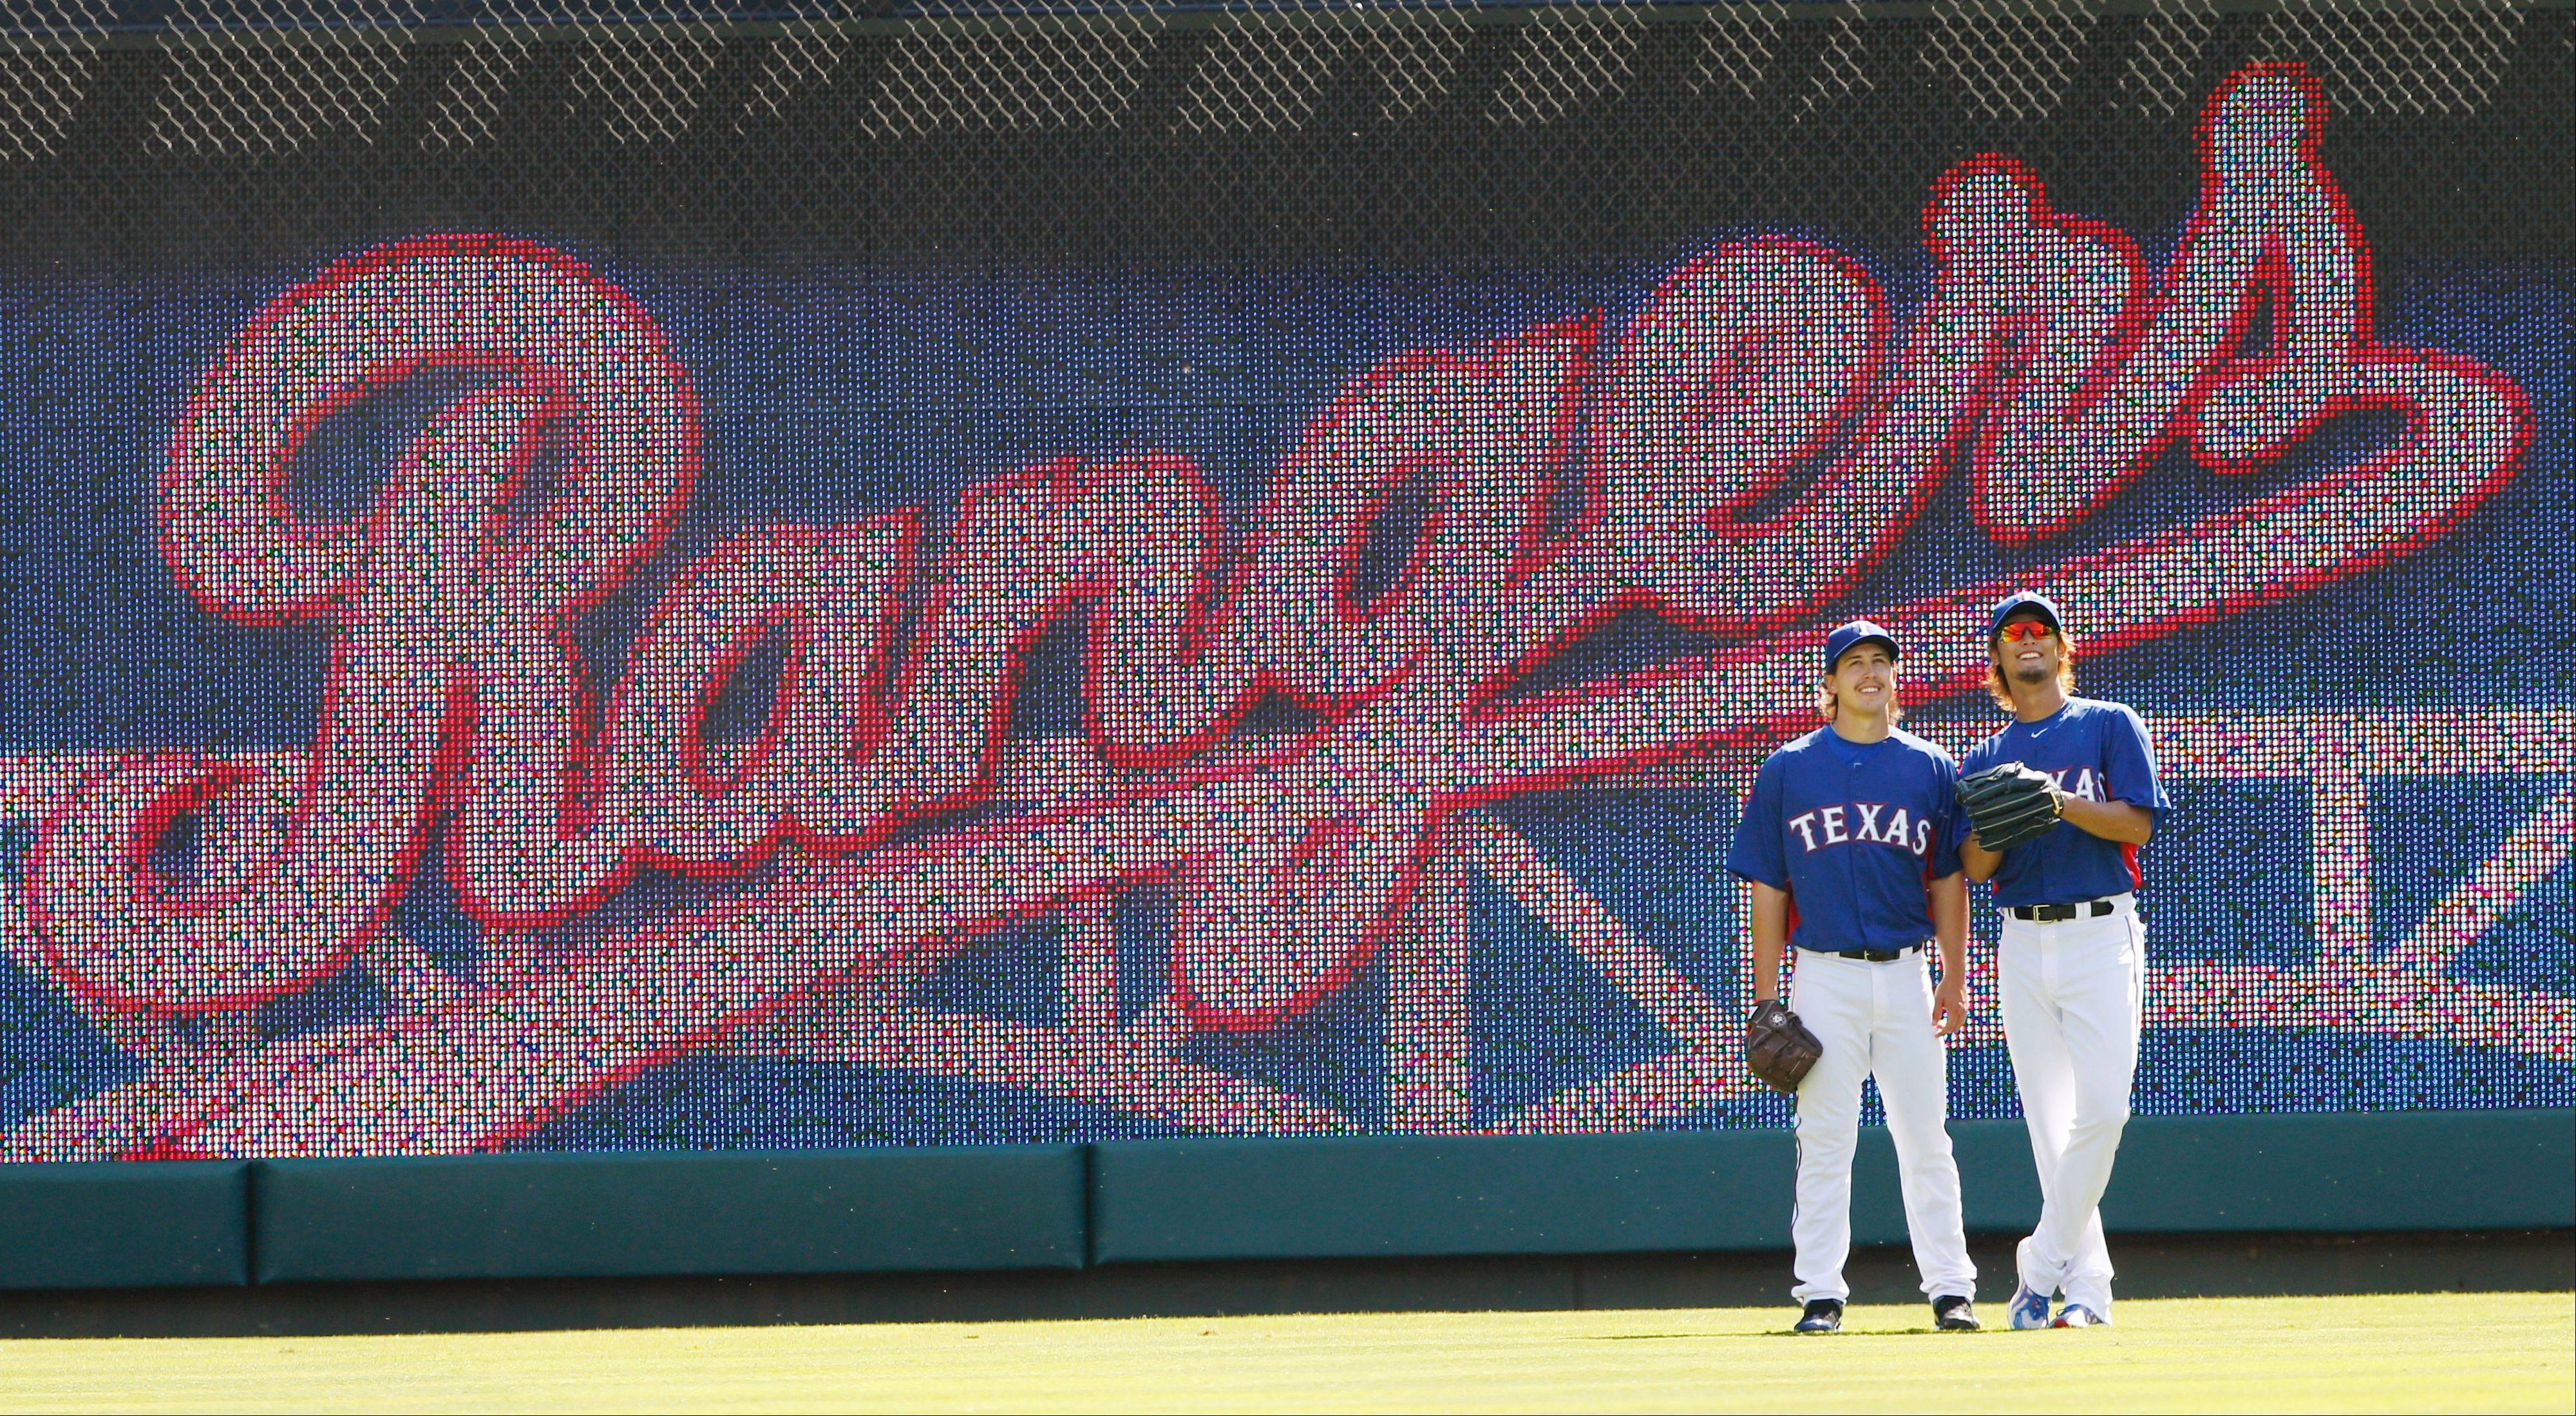 Texas Rangers starting pitcher Derek Holland, left, and and starting pitcher Yu Darvish of Japan, warm up in the outfield before a baseball game against the Chicago White Sox Friday, April 6, 2012 in Arlington, Texas.